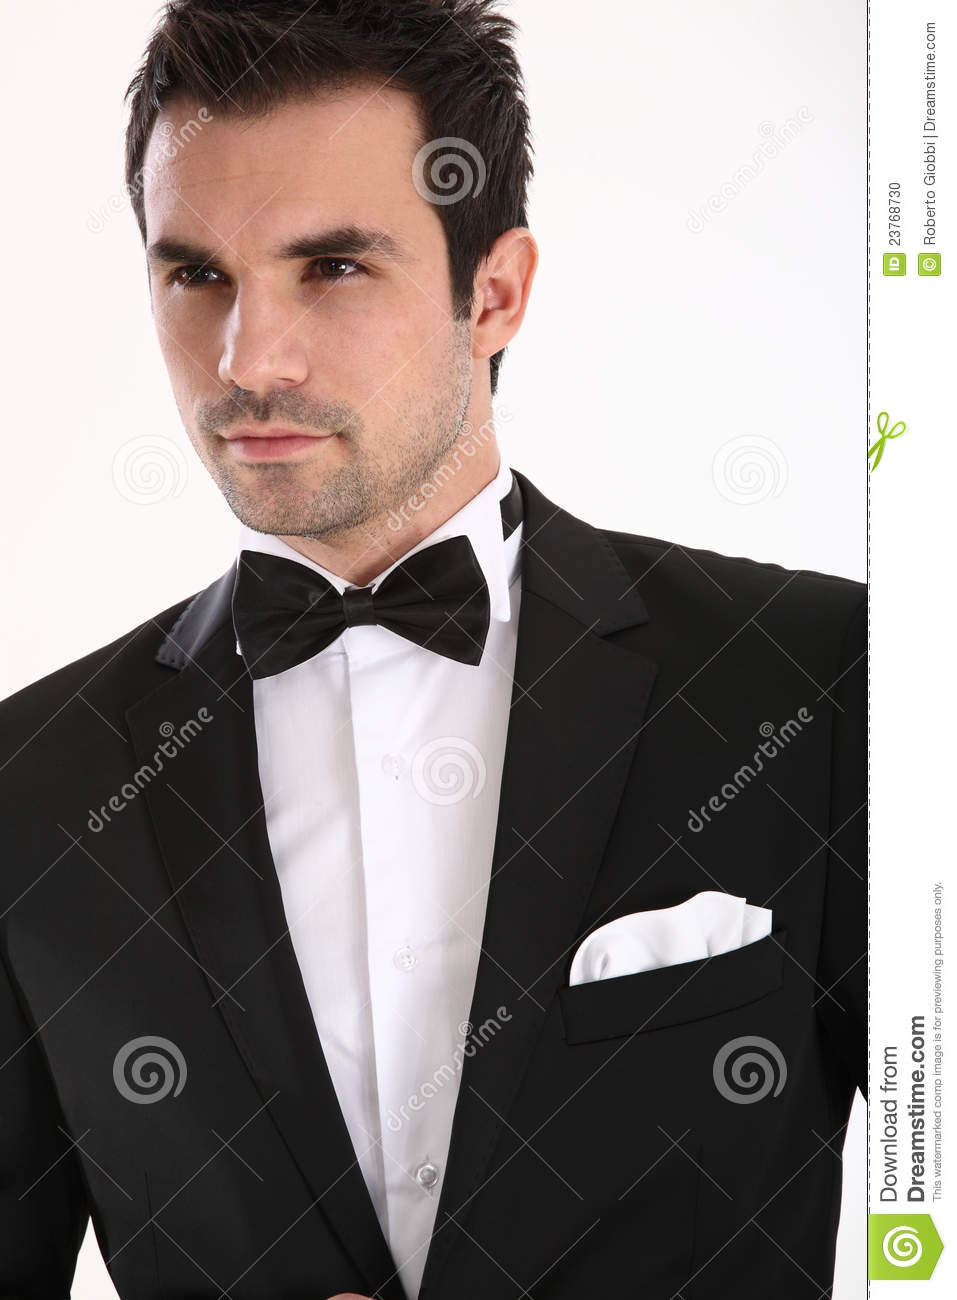 Stock Photo  Handsome man in tuxedoHandsome Man In Tux